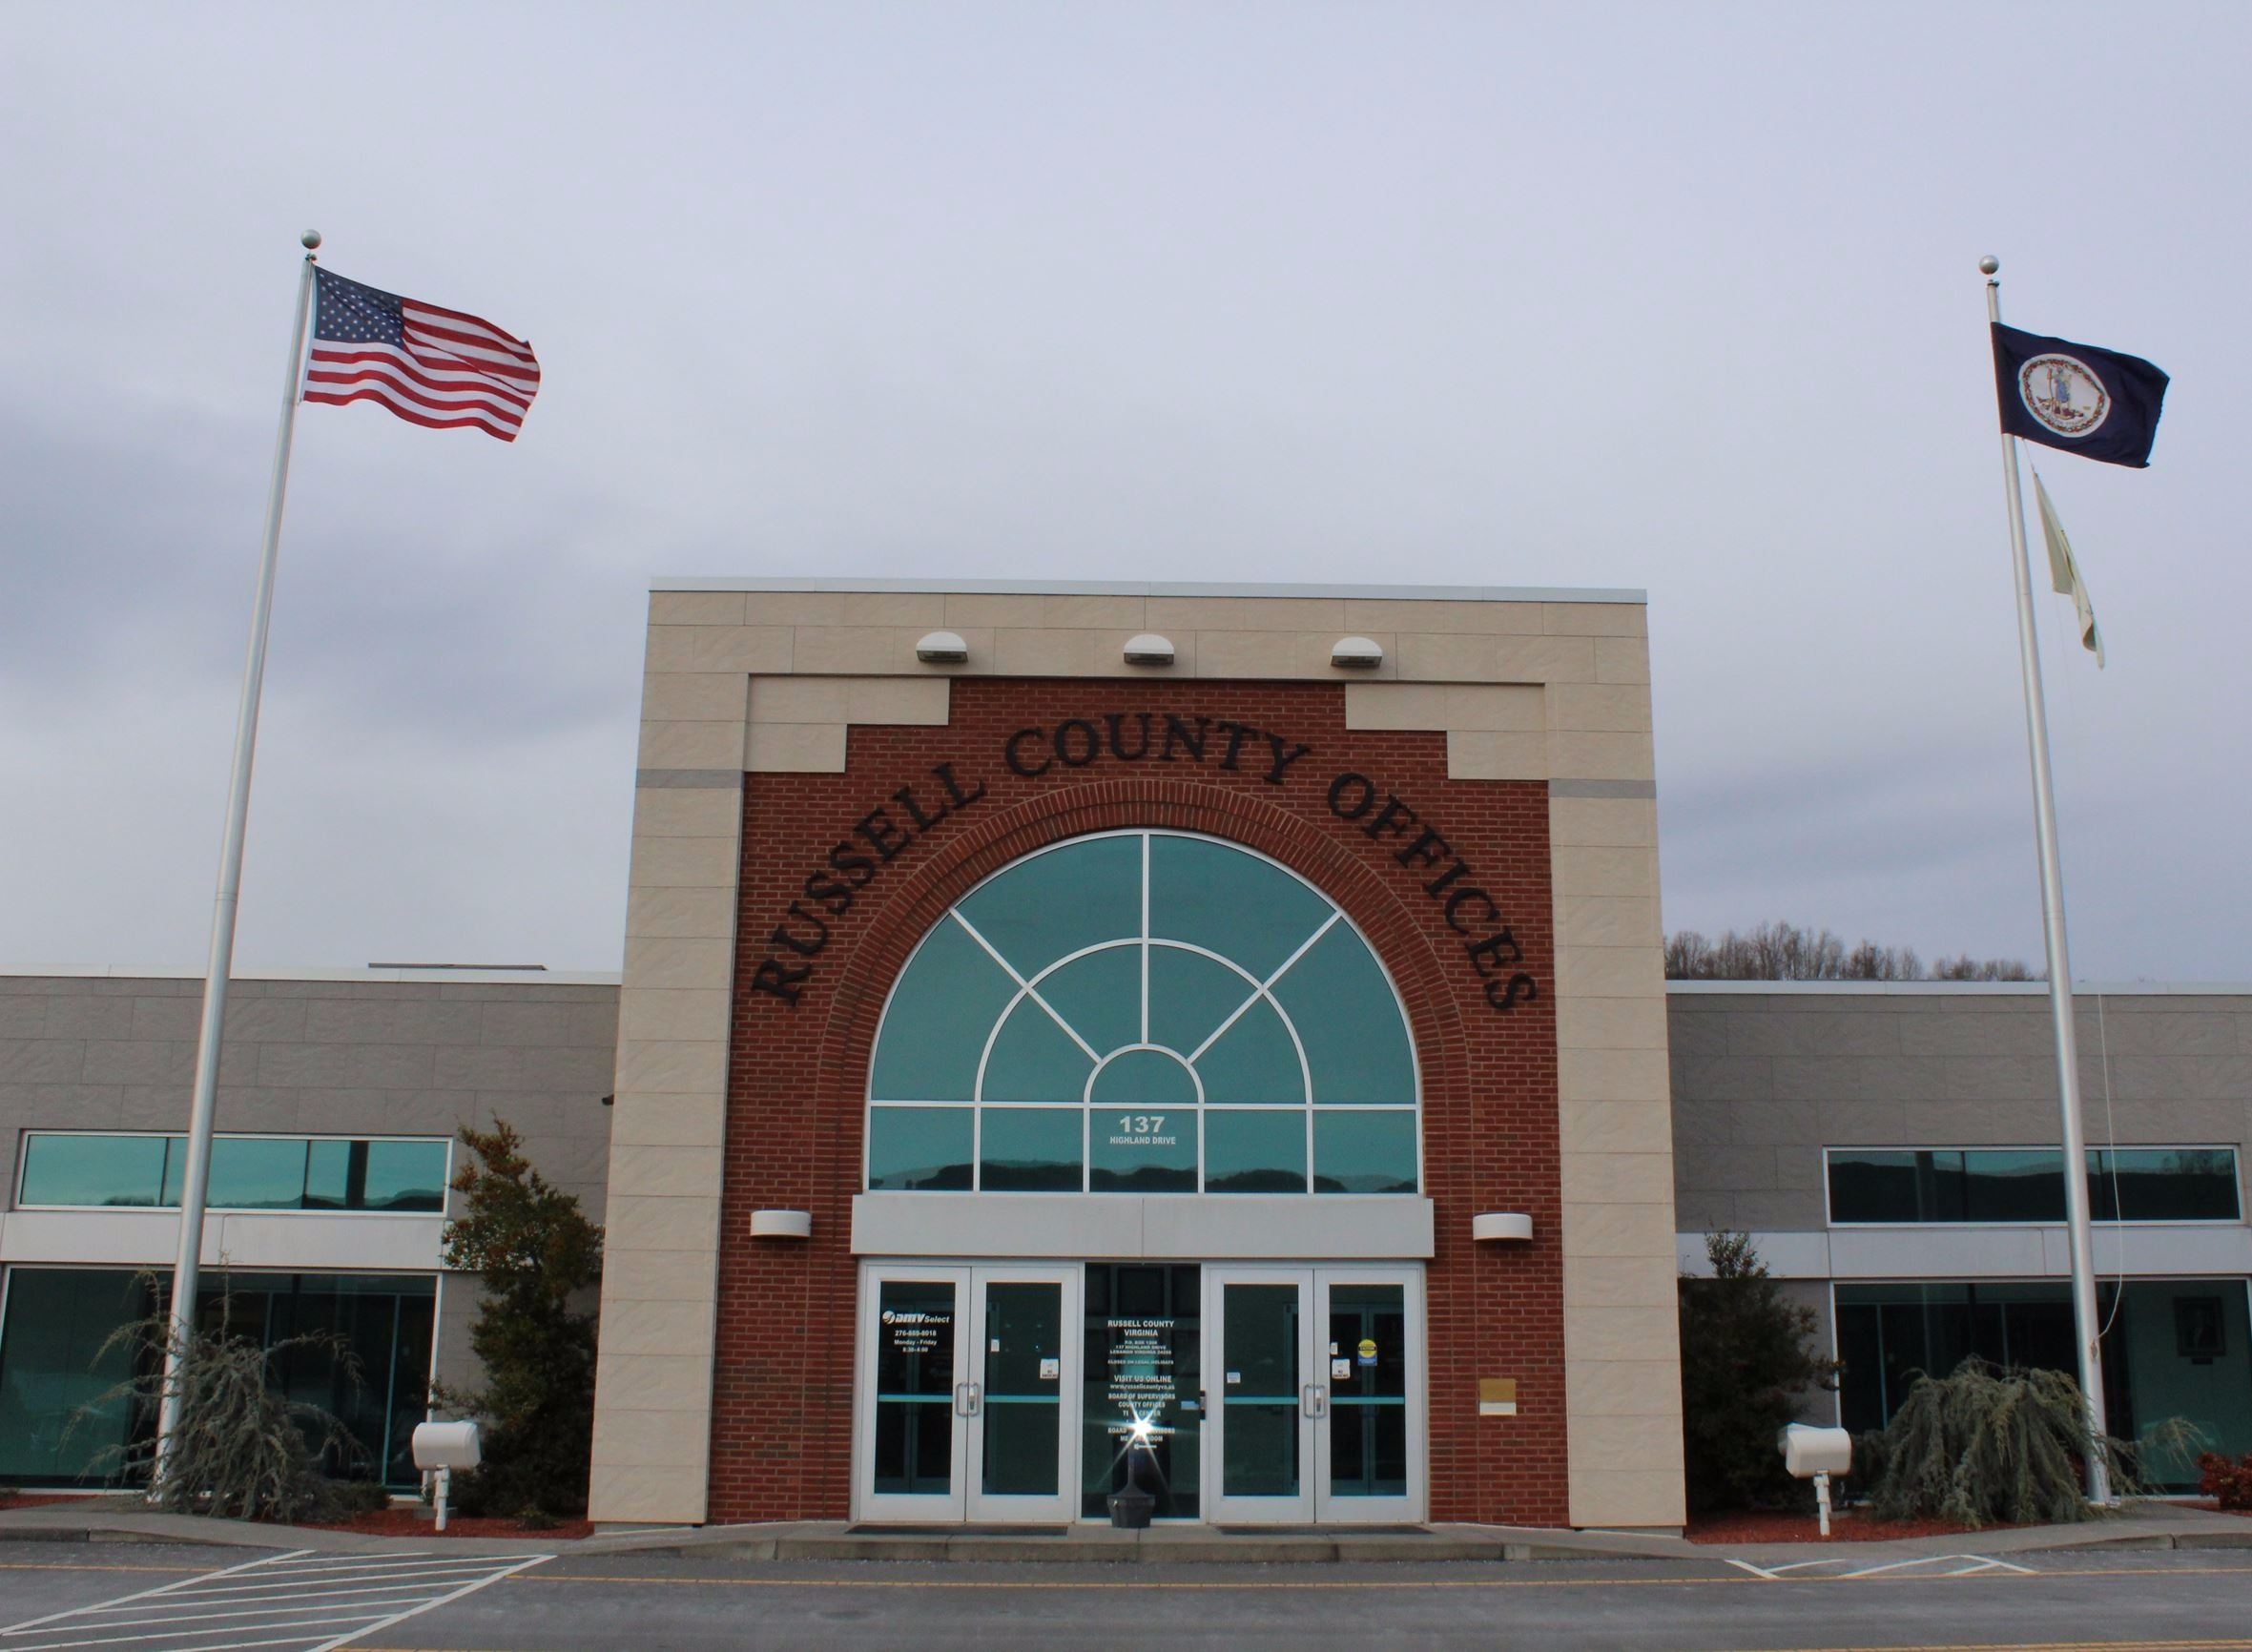 Entrance to Russell County Government Offices